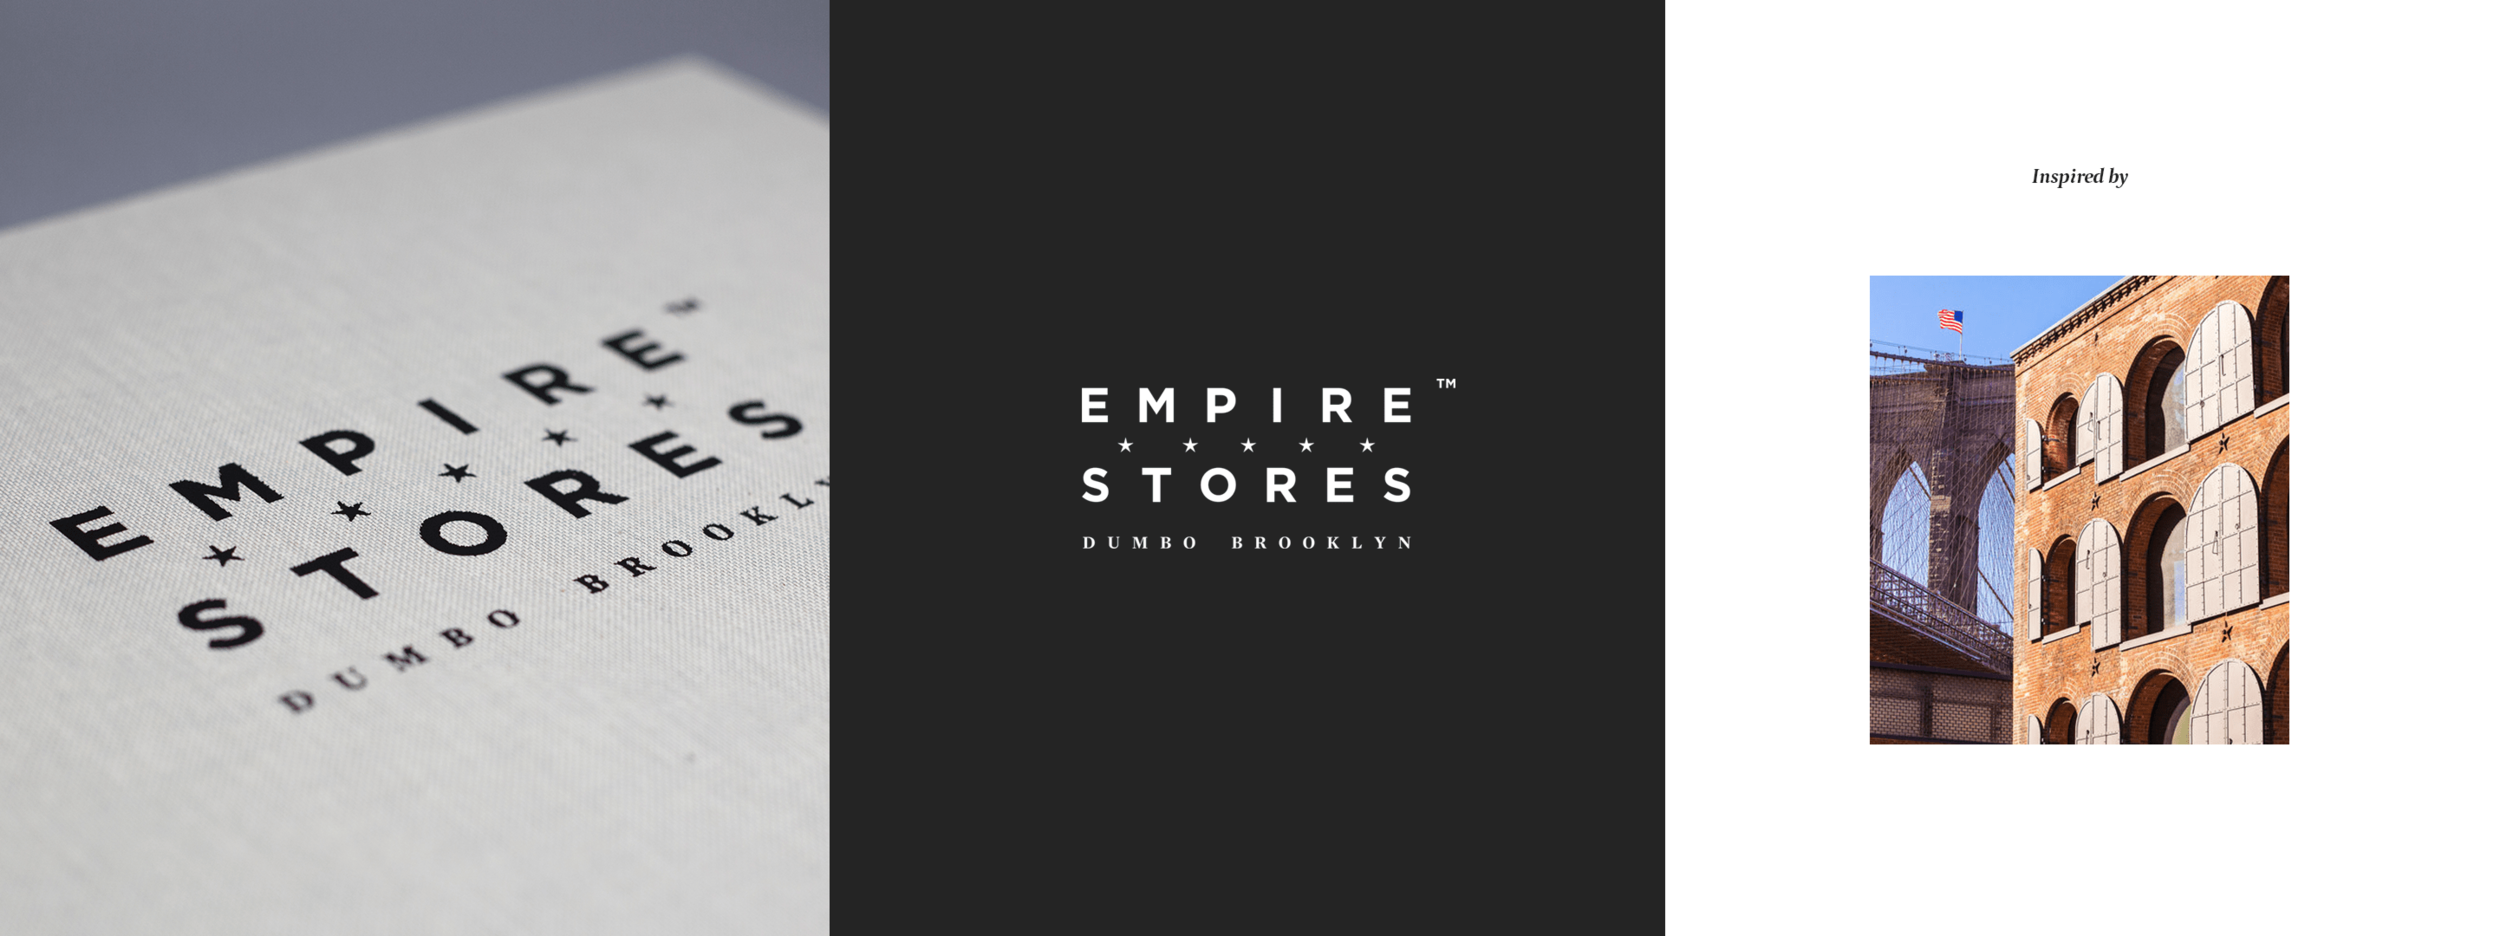 Empire stores.png